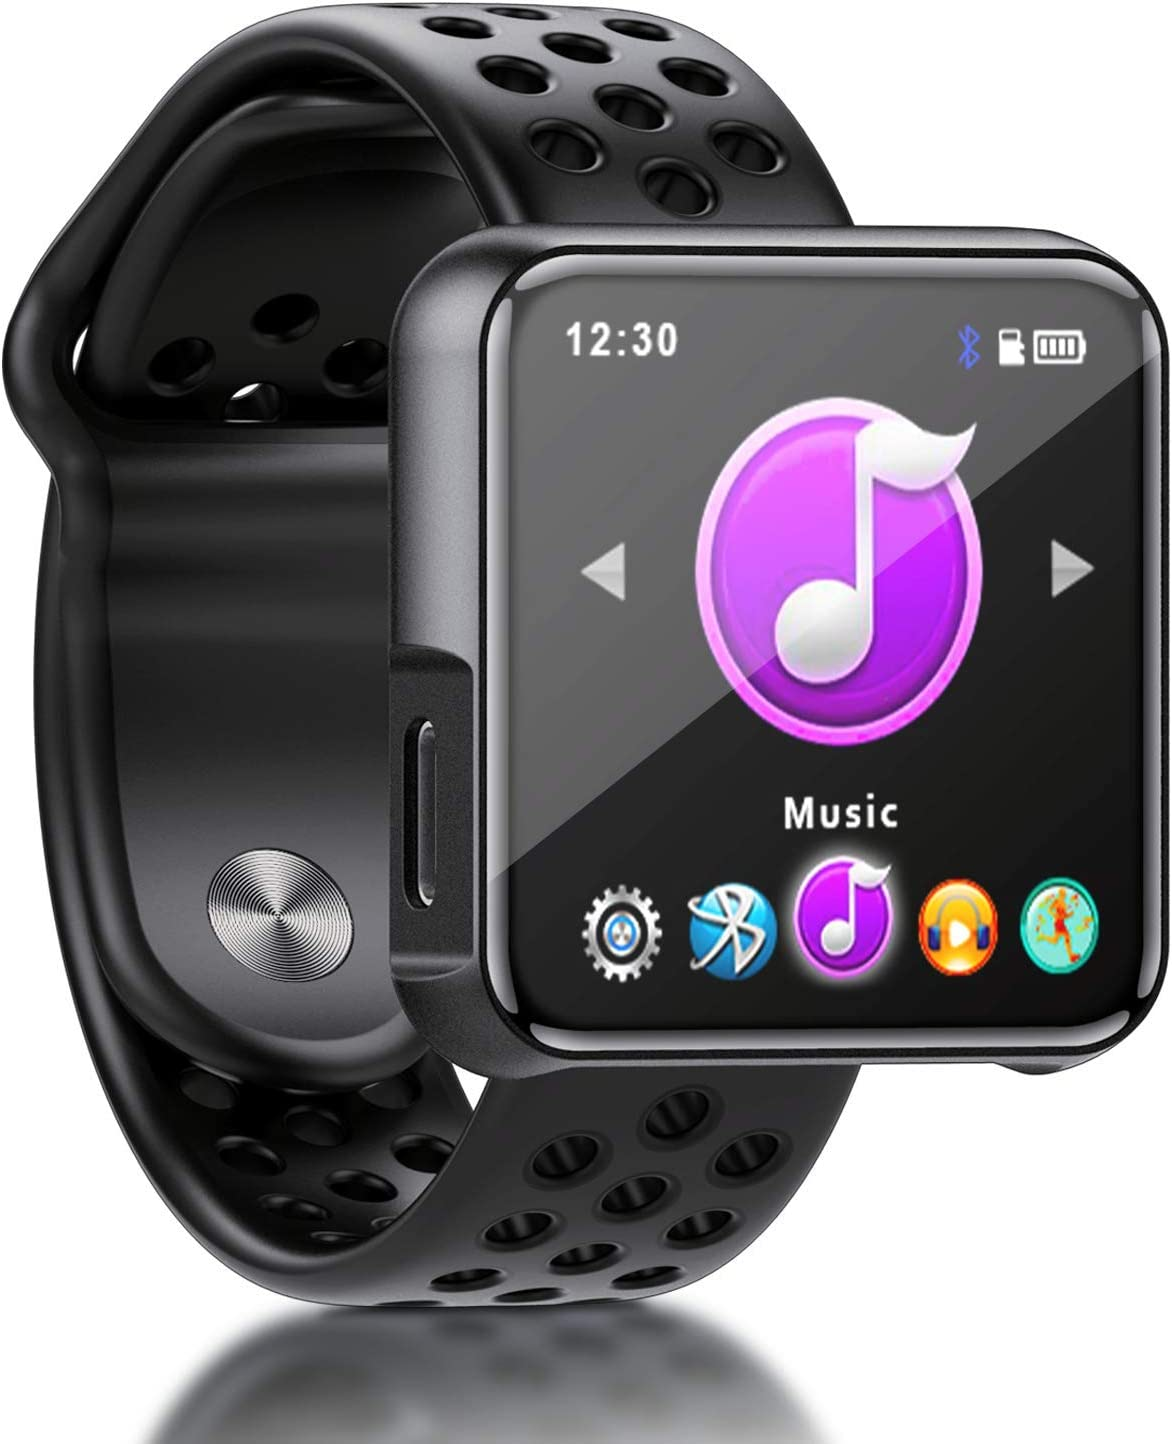 SEWOBYE Reproductor MP3 Player de 16GB, Reproductor mp3 Bluetooth 4.2 de Pantalla Completa Táctil, MP3 Deporte con Clip y Correa de Reloj, Tarjeta de 128GB TF Ampliable (Black)